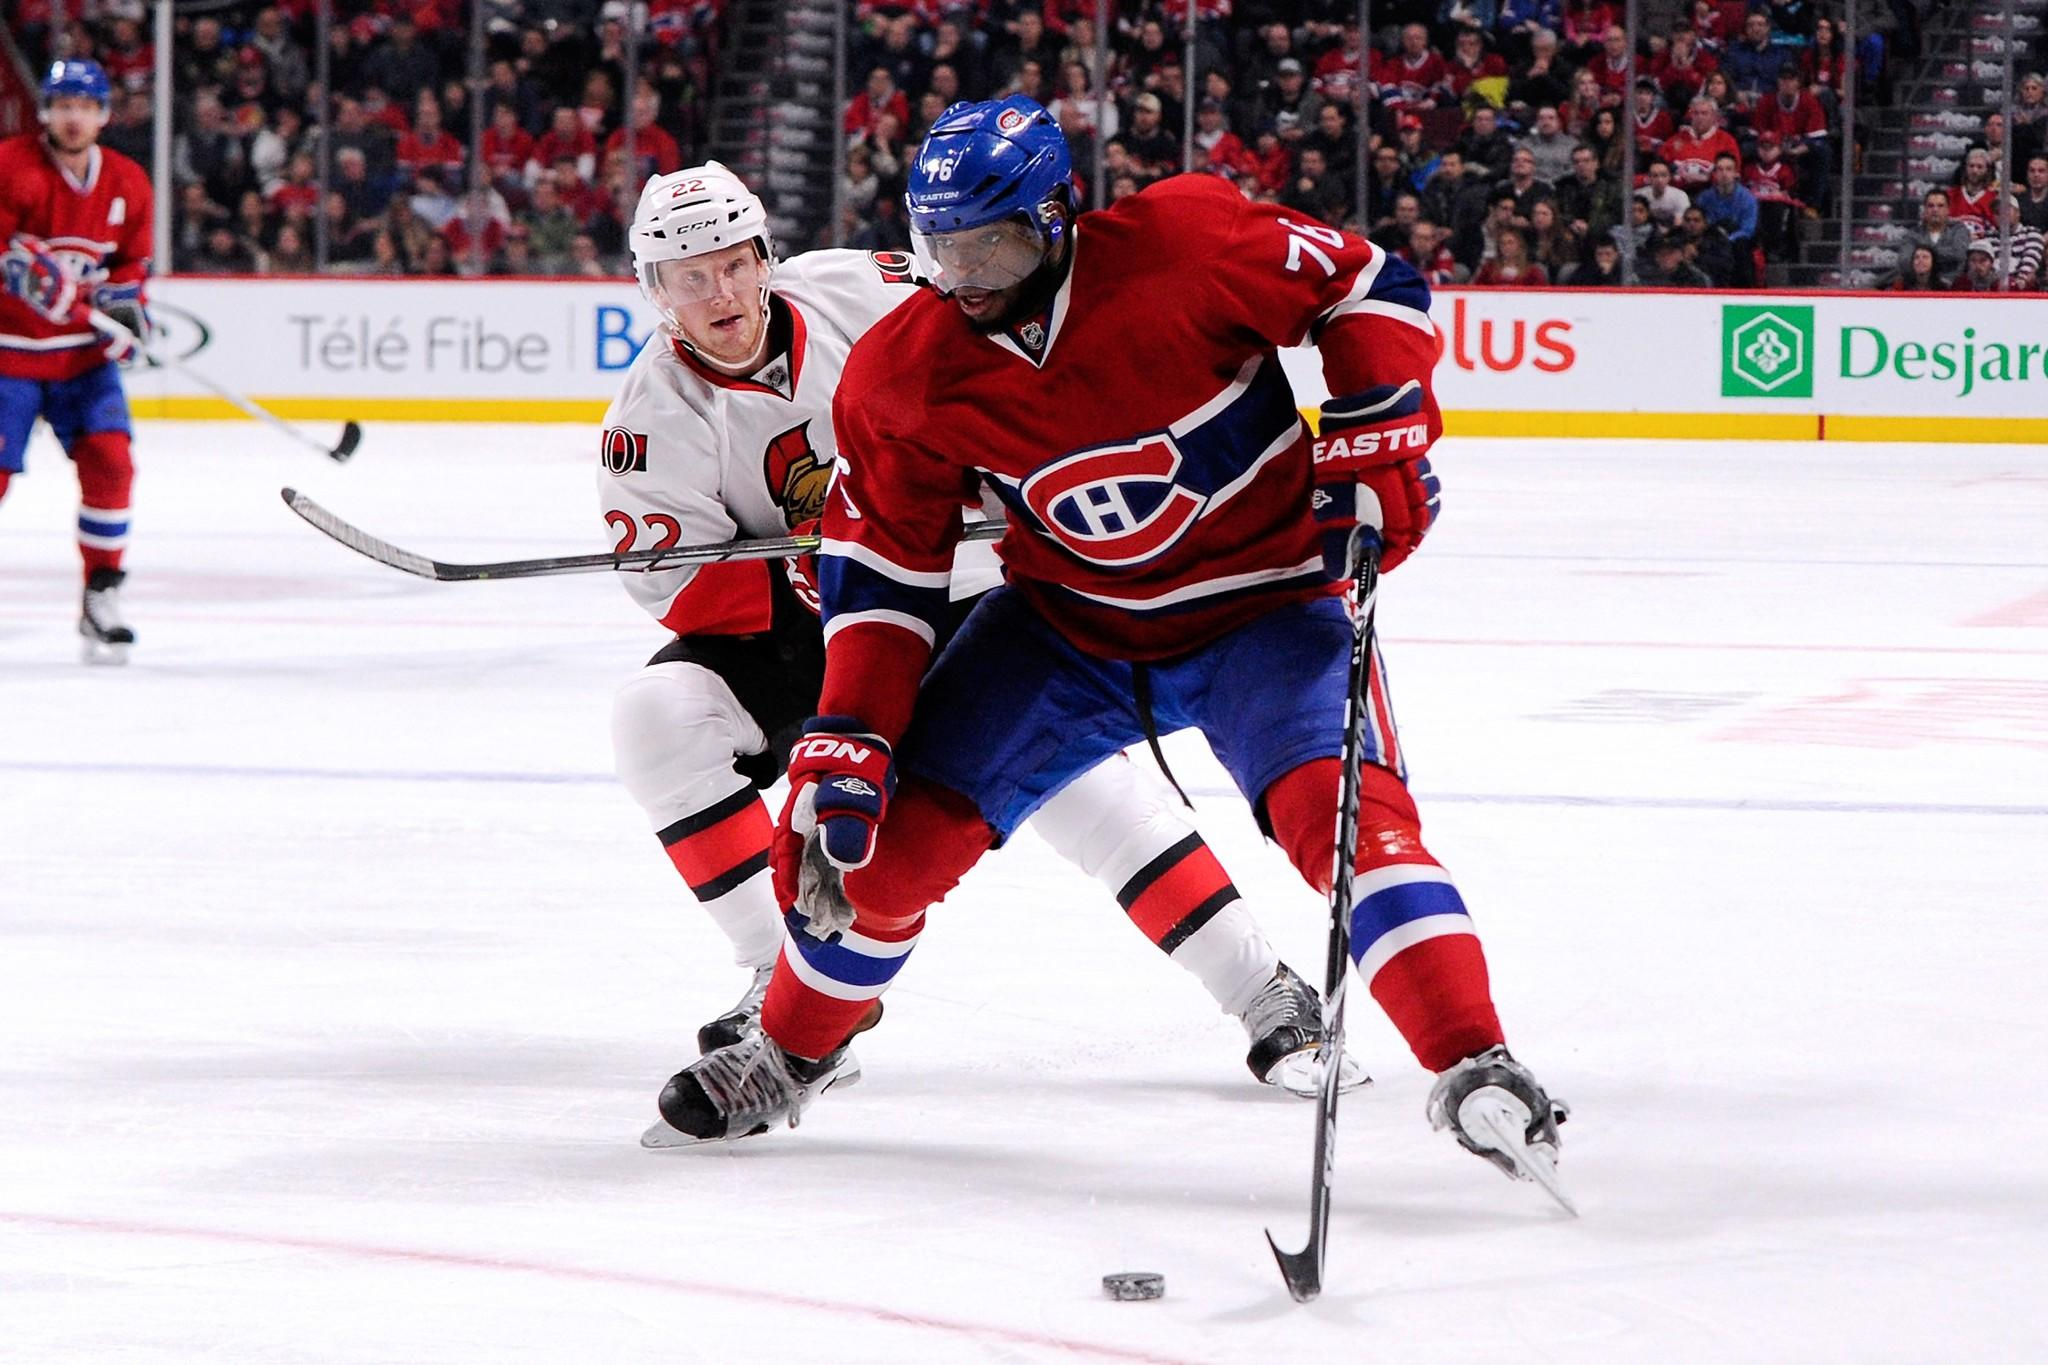 Canadiens defenseman P.K. Subban